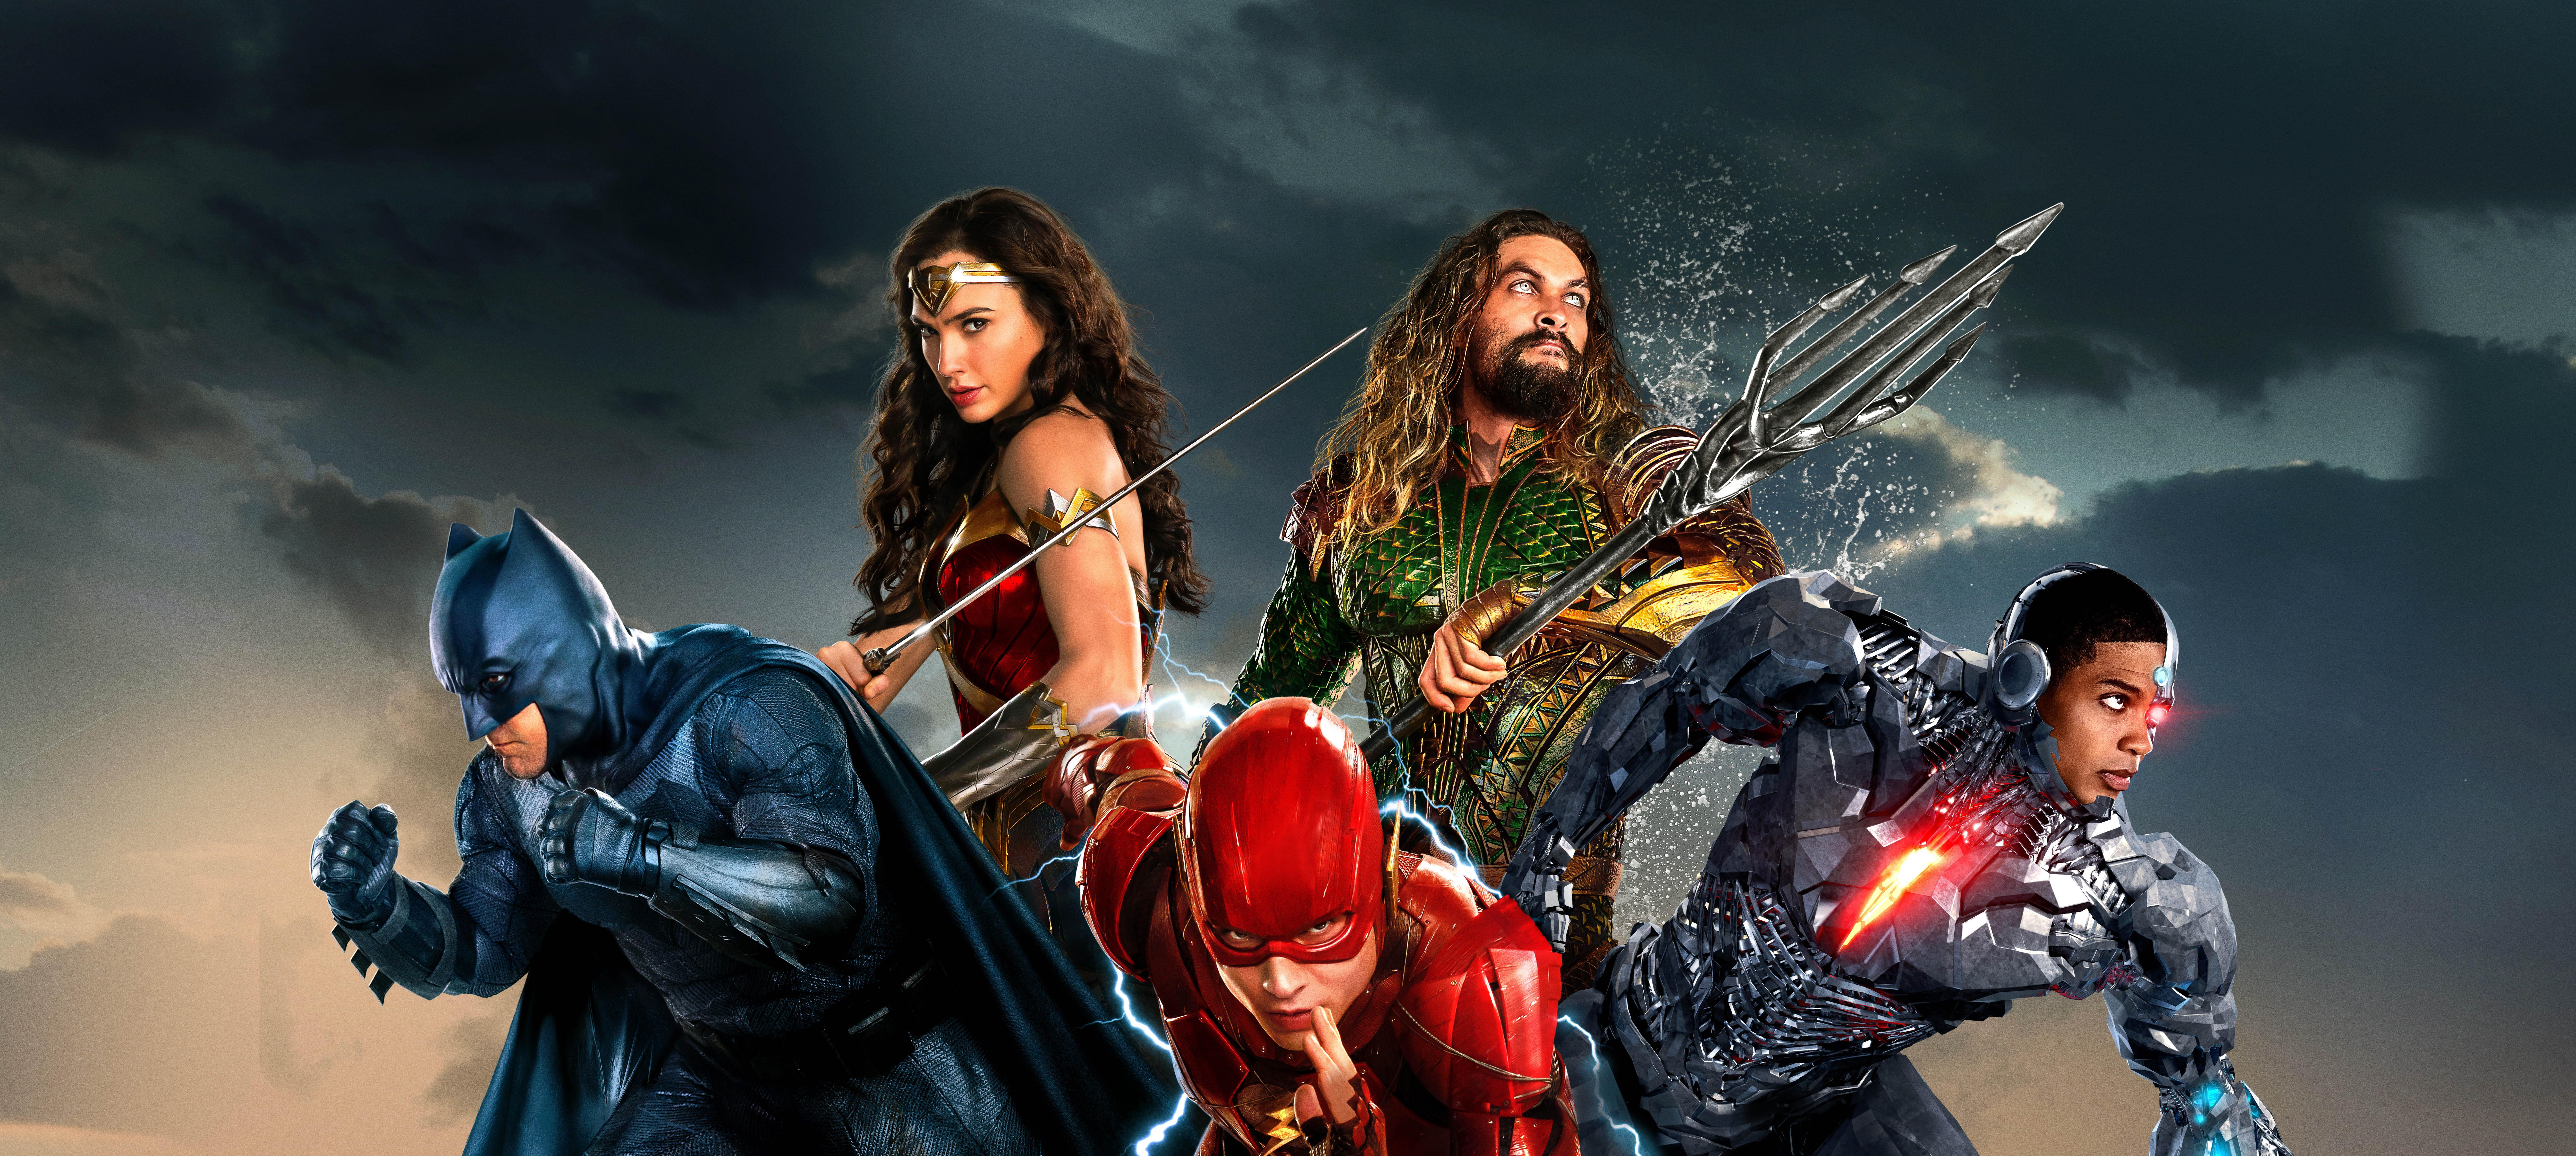 Justice League Movie Hd Movies 4k Wallpapers Images: 10k Justice League, HD Movies, 4k Wallpapers, Images